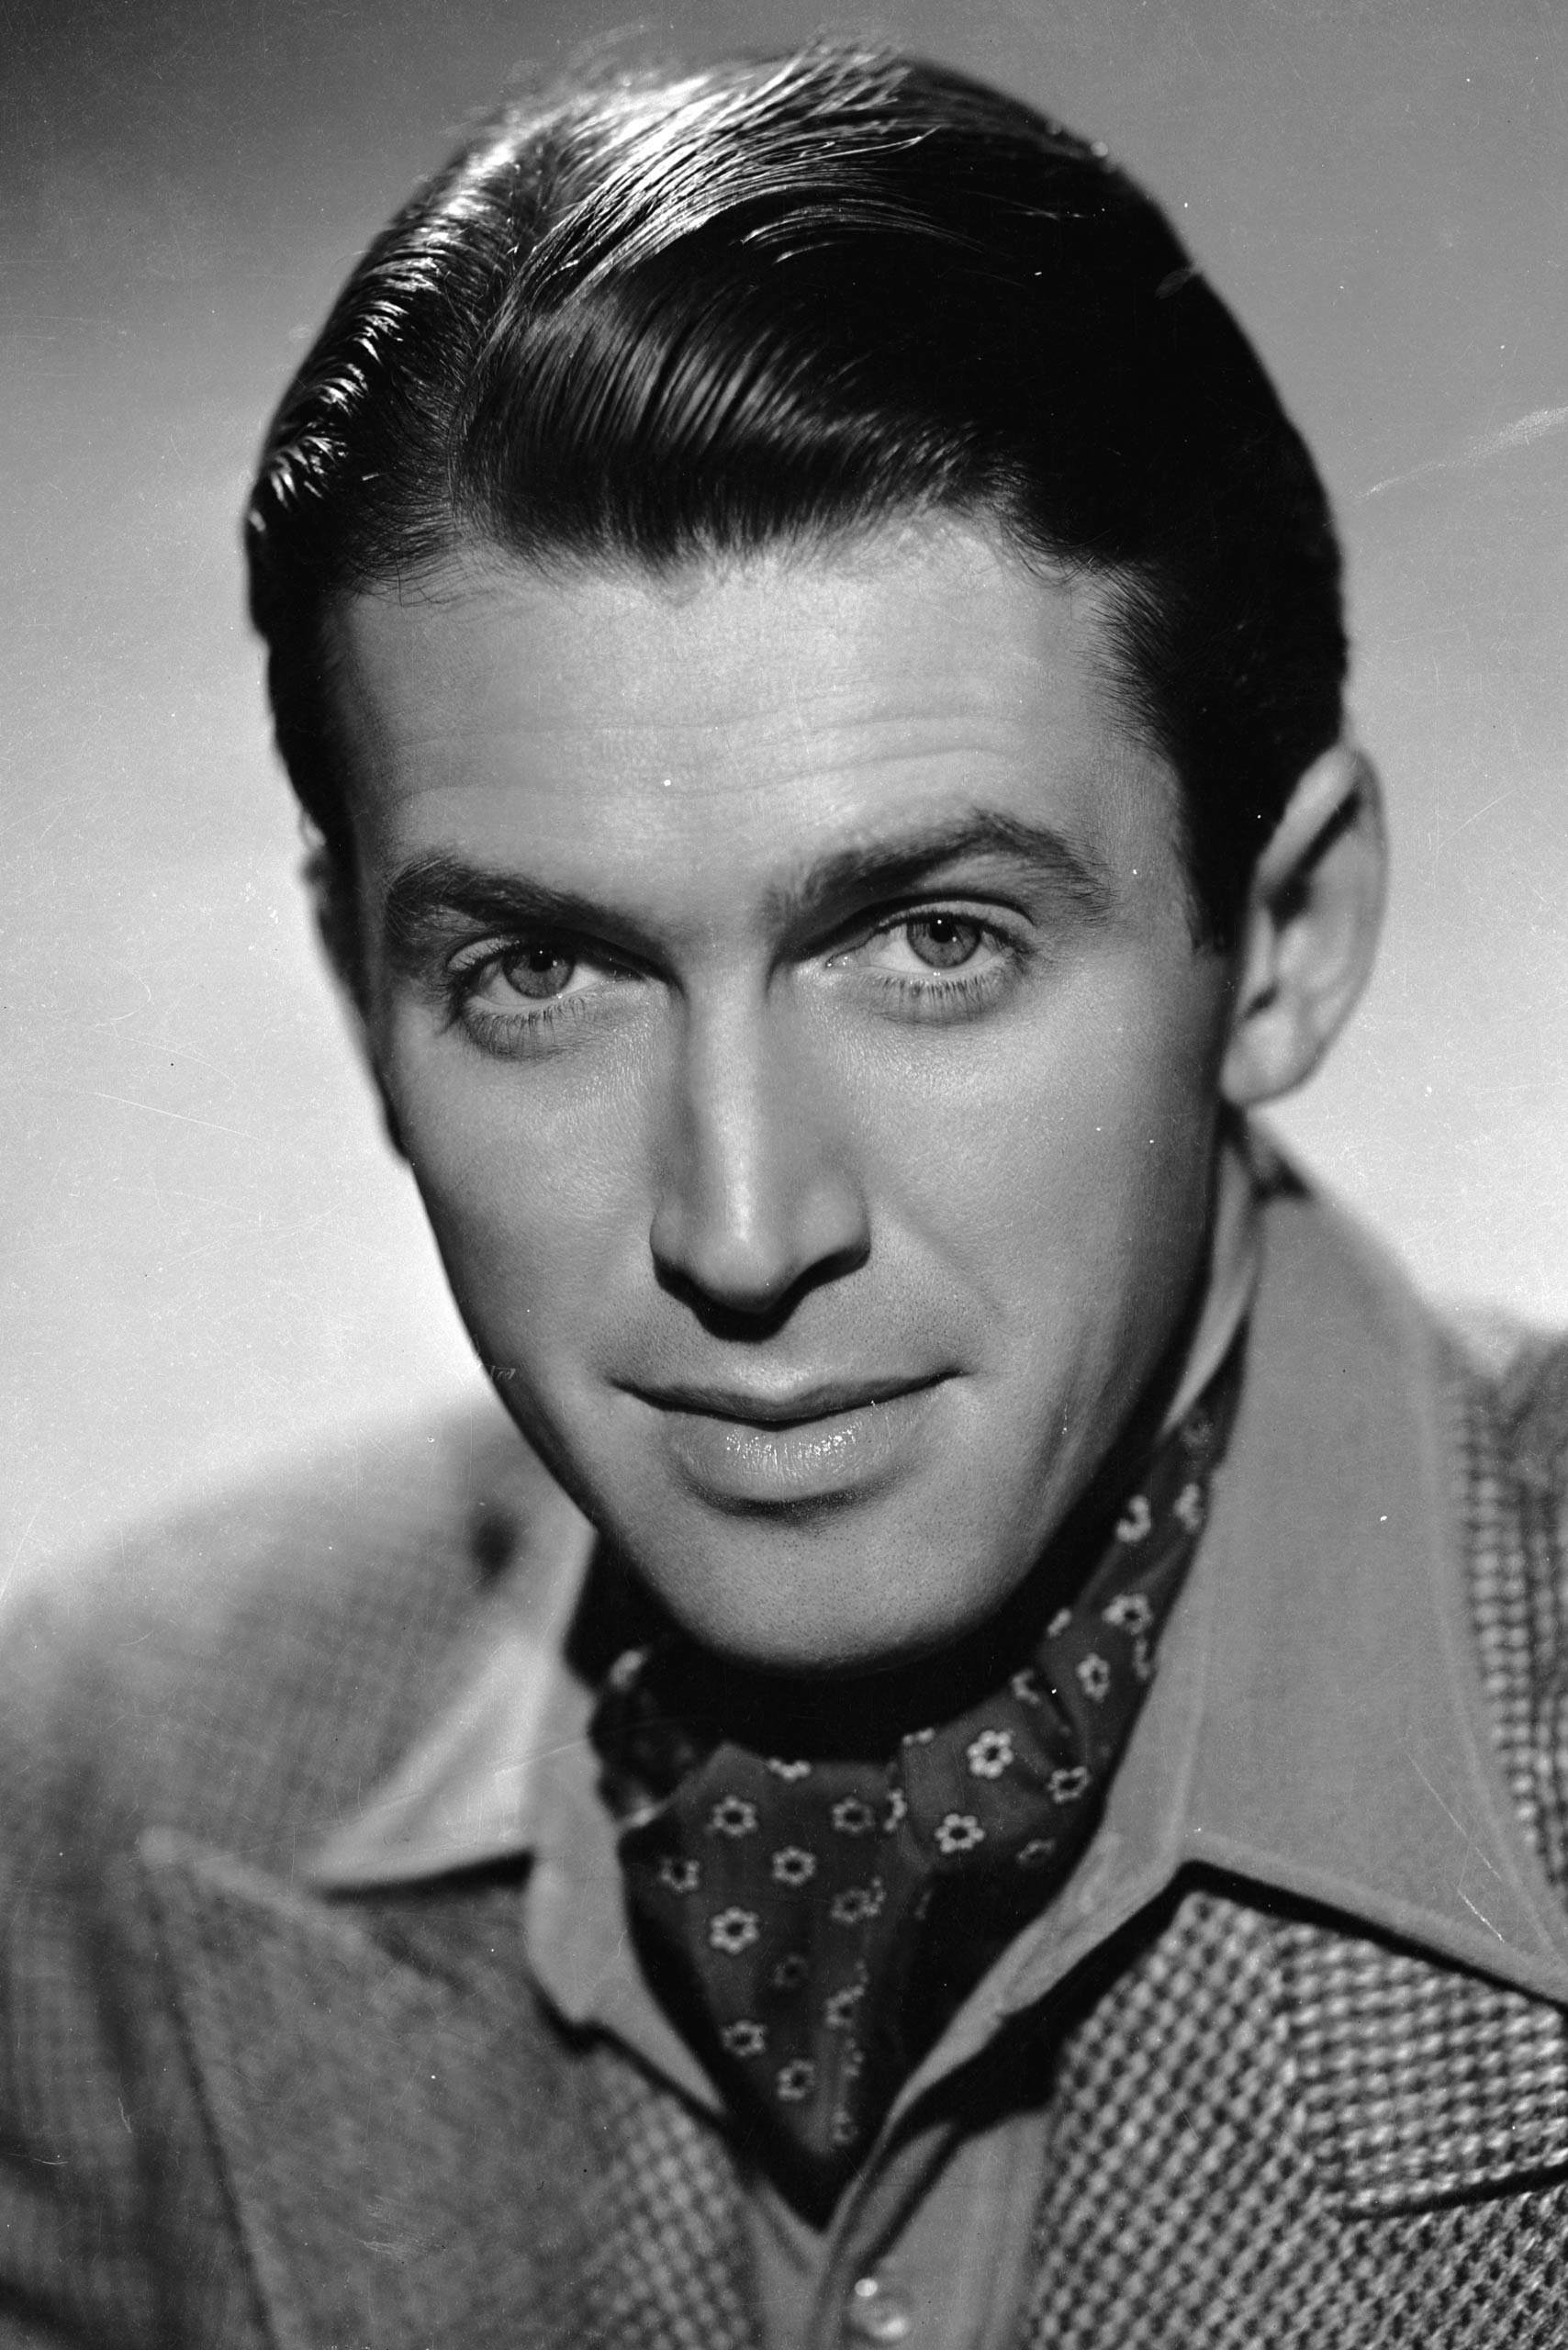 <strong>1941: James Stewart - <i>The Philadelphia Story</i></strong>